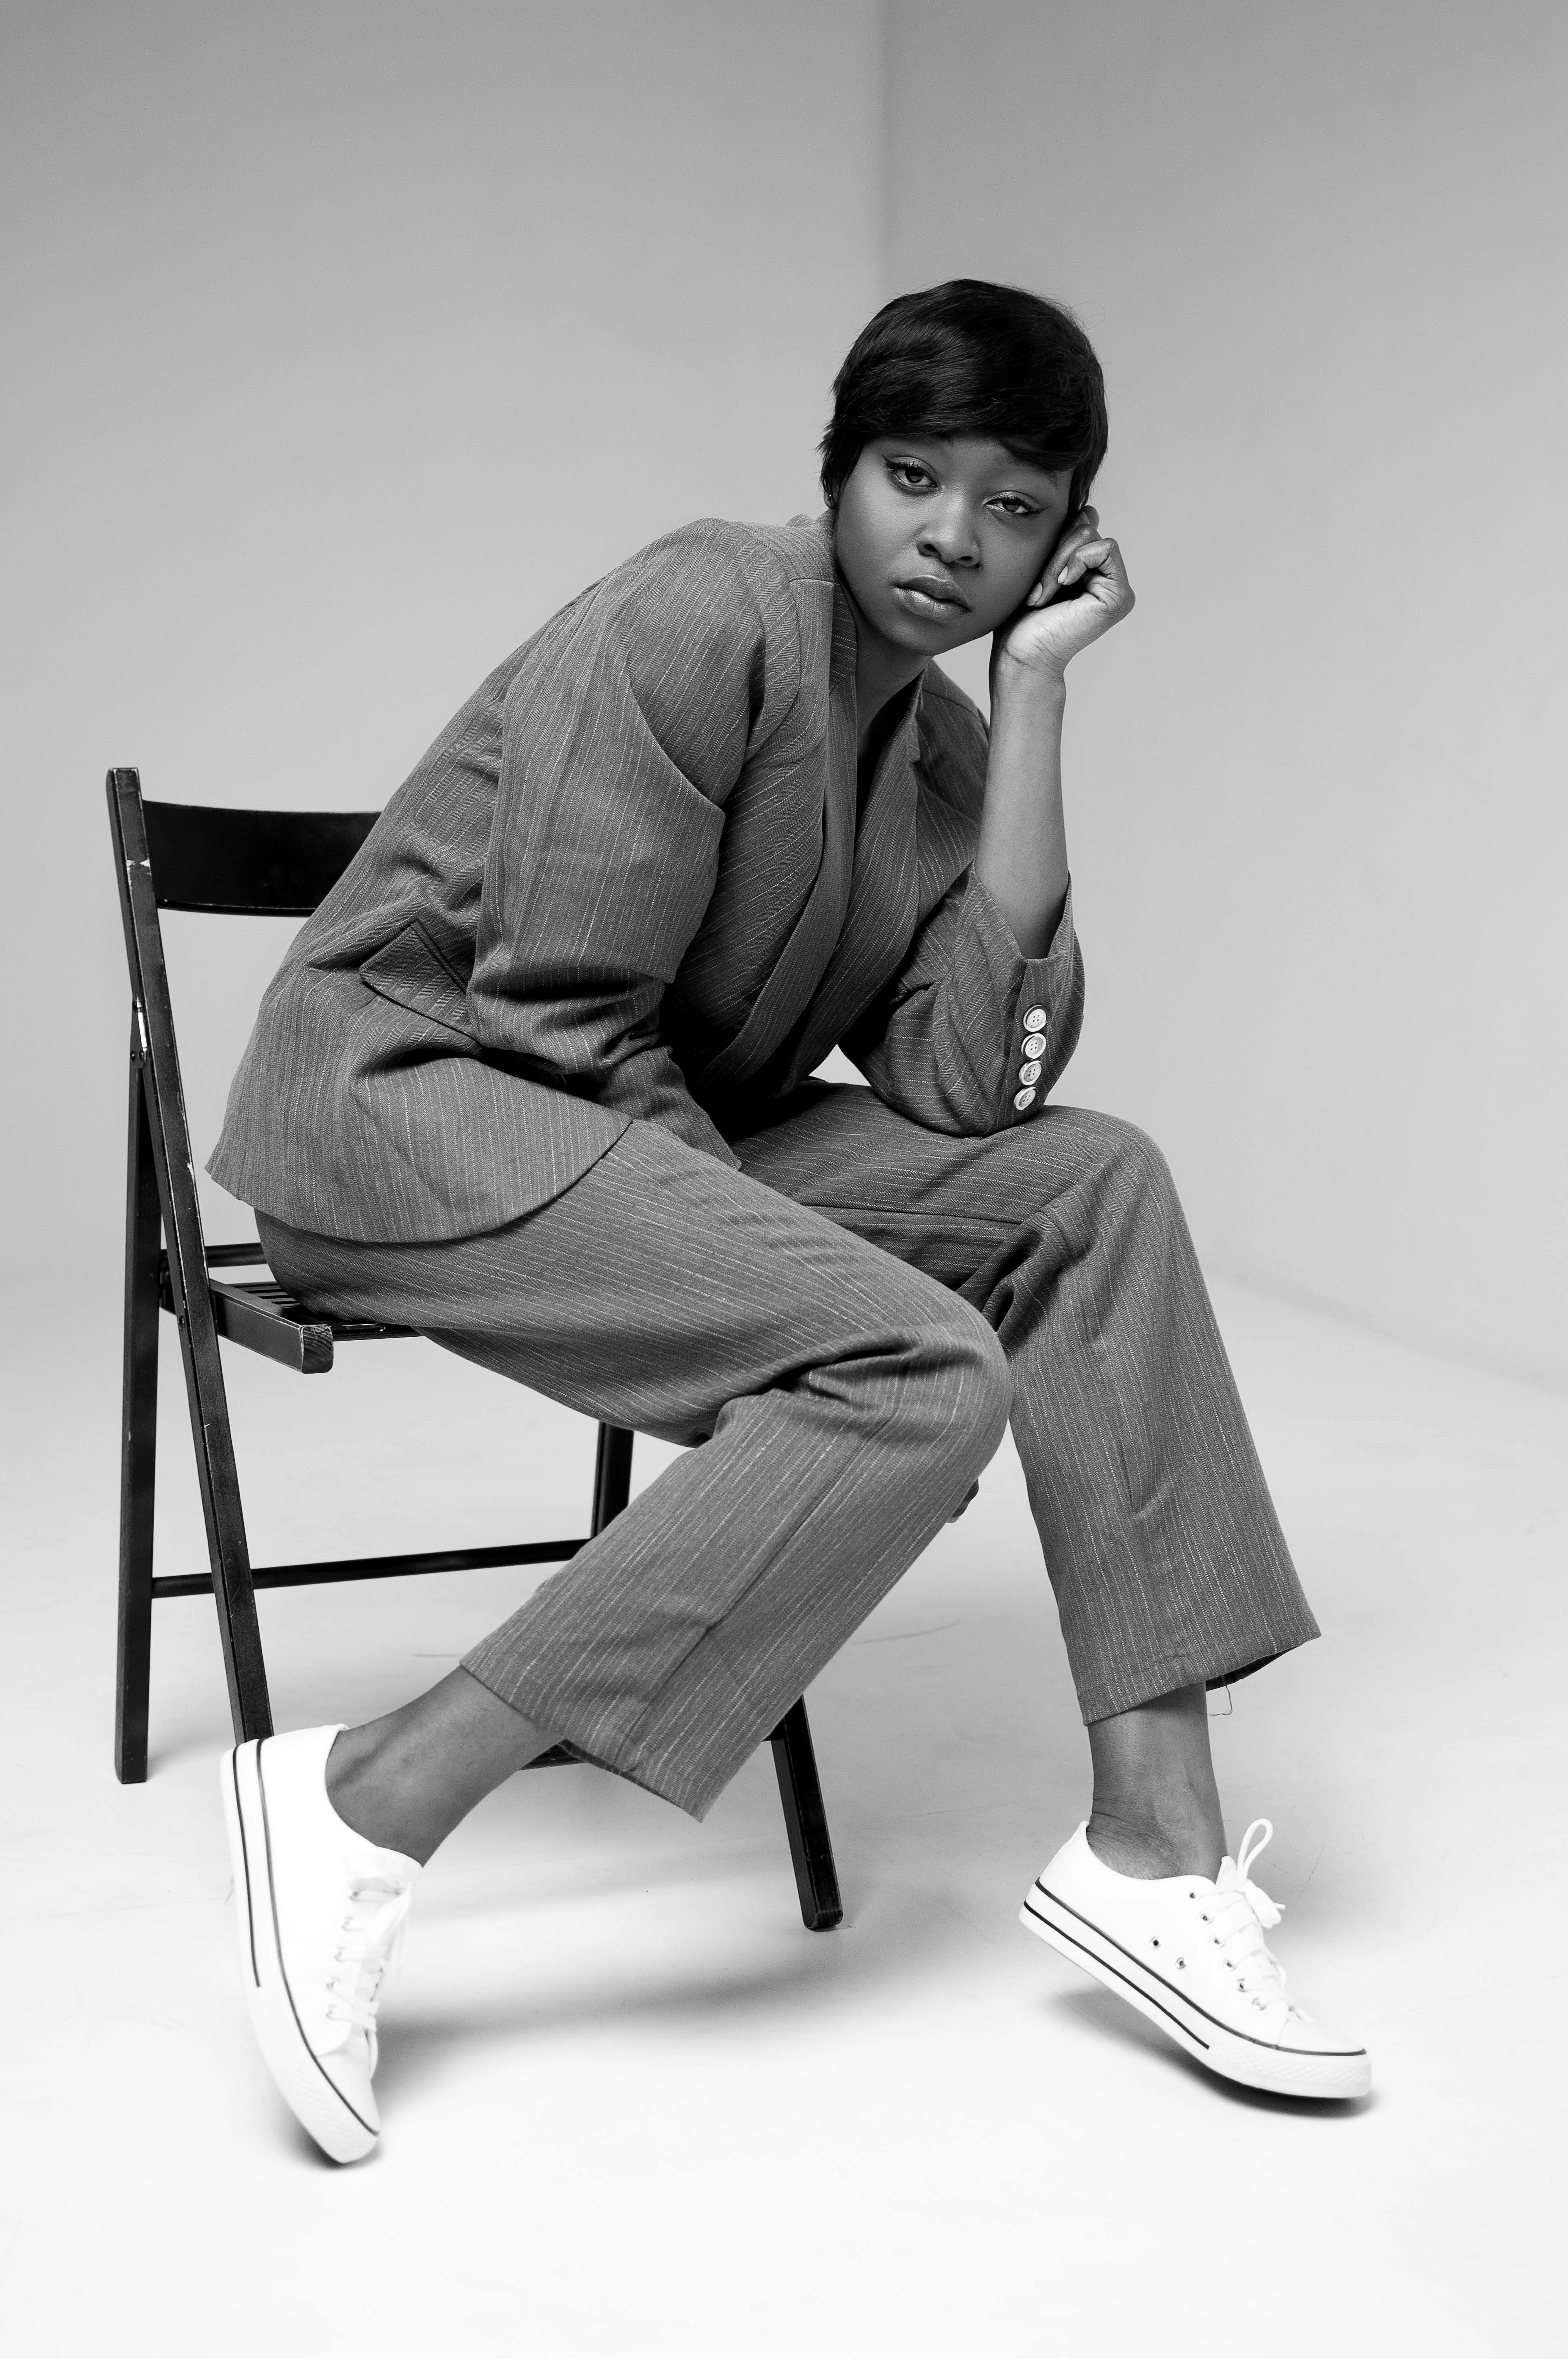 Grayscale Photo of Woman in Formal Suit Sitting on Folding Chair, Beauty model, Sad, Pants, Person, HQ Photo